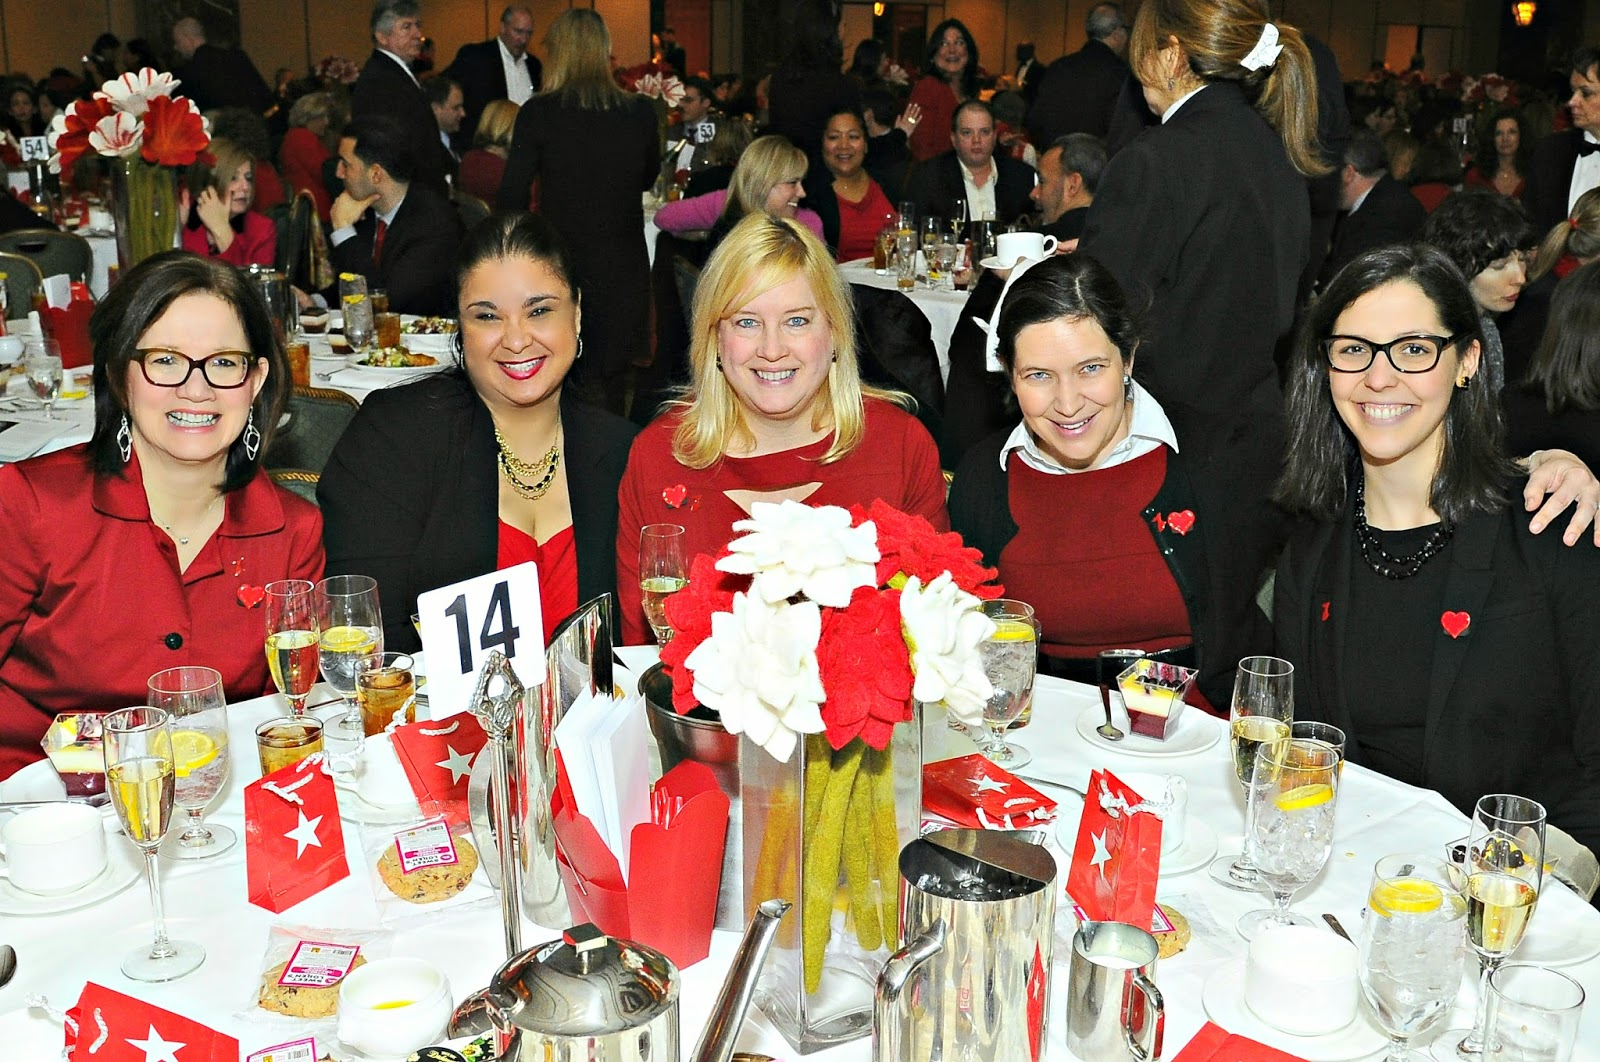 Table 14 Grain Foods Foundation Silver Heart Sponsors of Go Red For Women Luncheon 2014 in New York City. charity, charitable initiatives, philanthropy